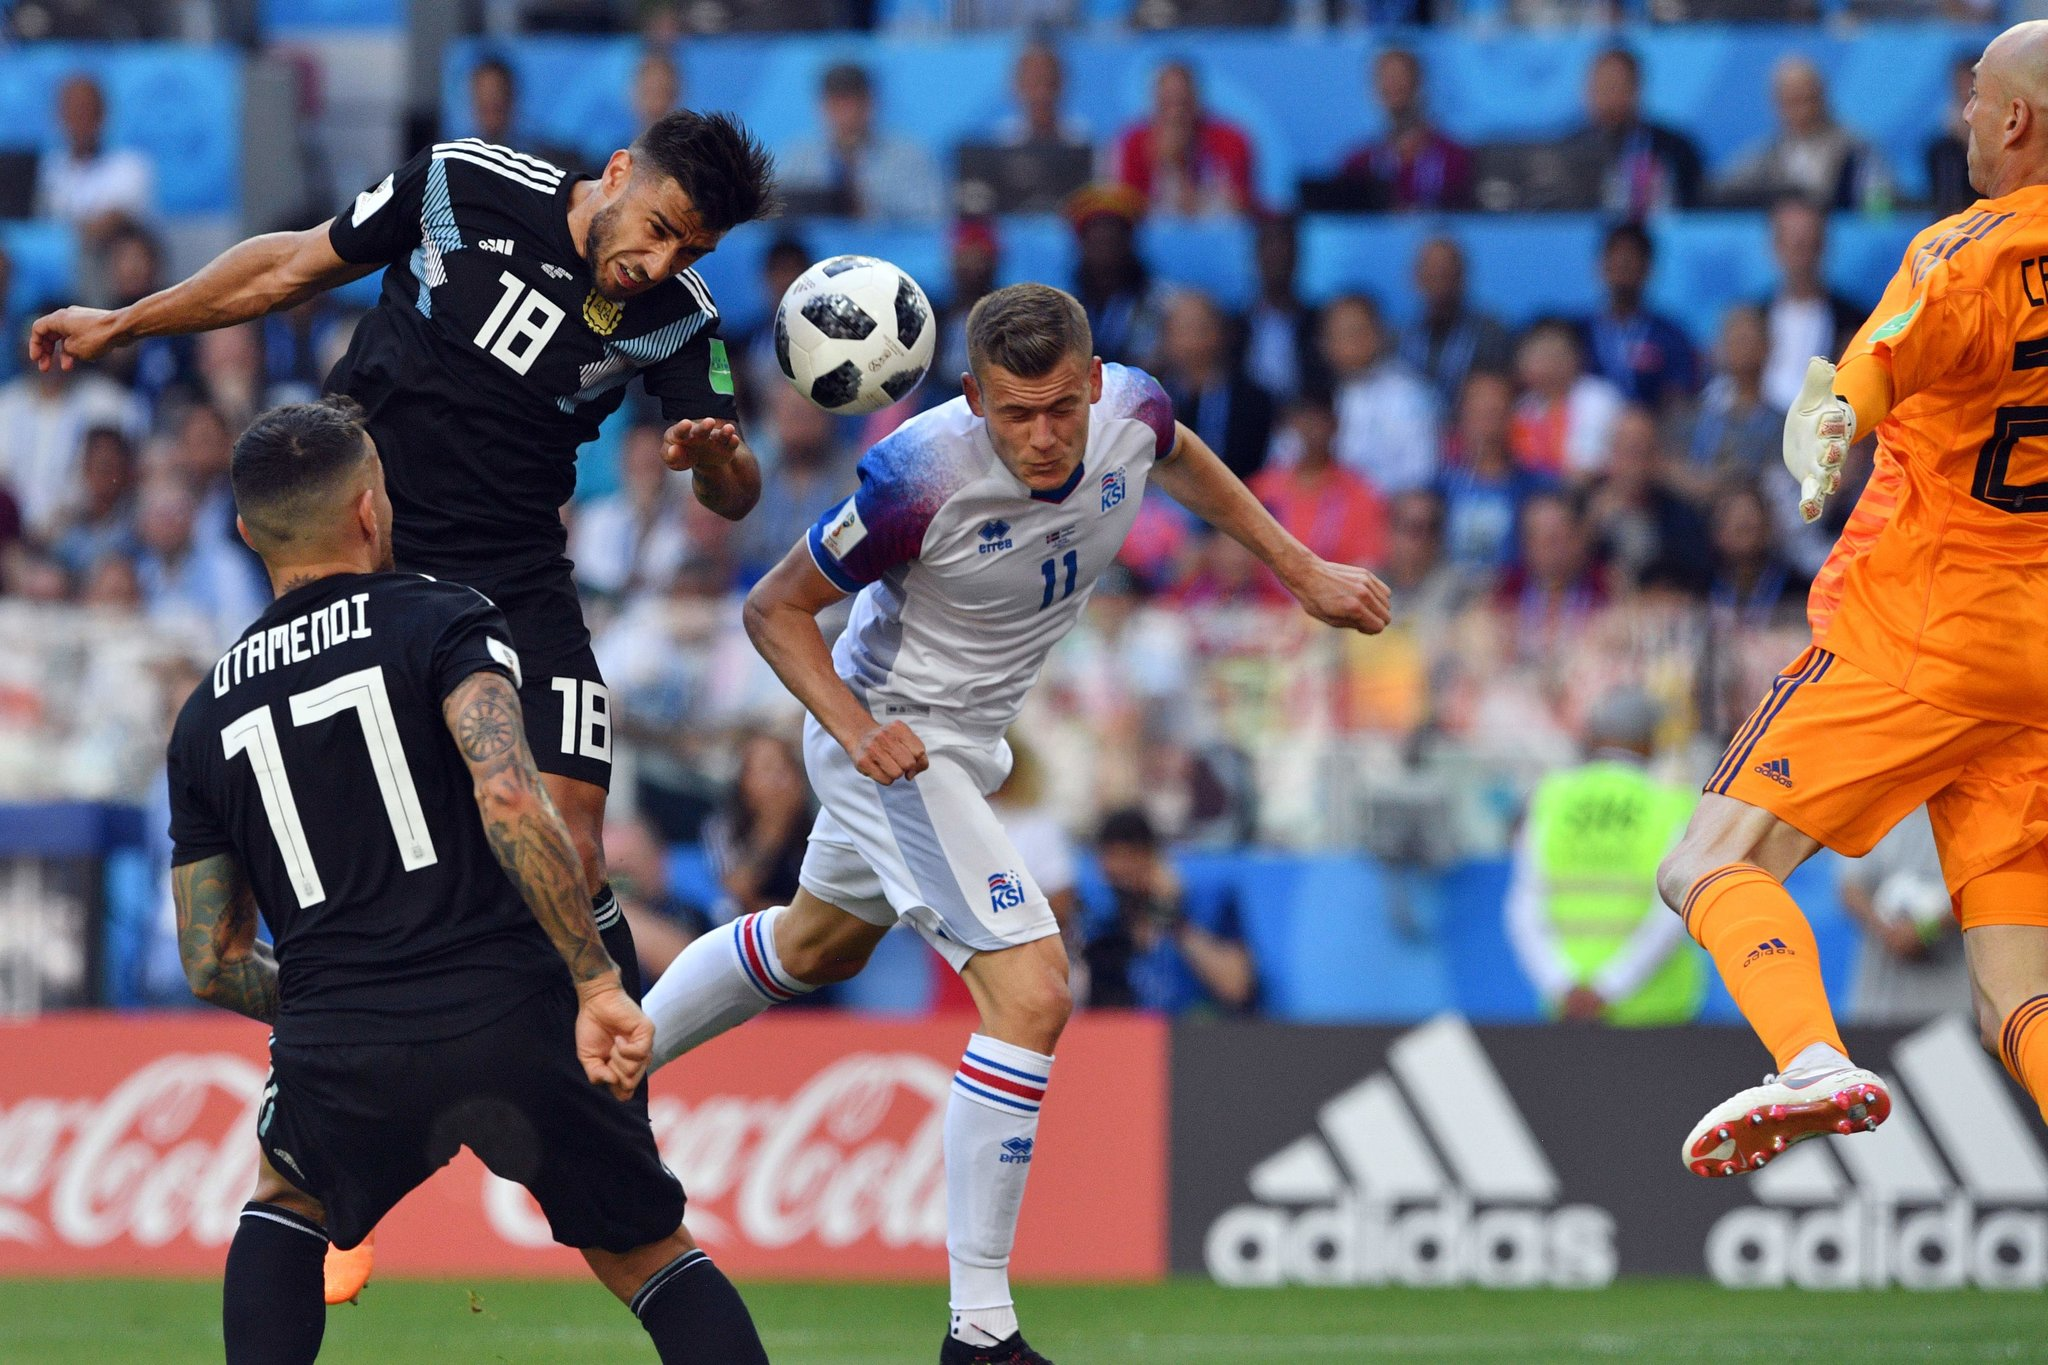 Alfred Finnbogason In Action In Iceland's First-Ever World Cup Game,  Against Argentina On Saturday. Finnbogason Scored Iceland's Only Goal In A  1-1 Tie.